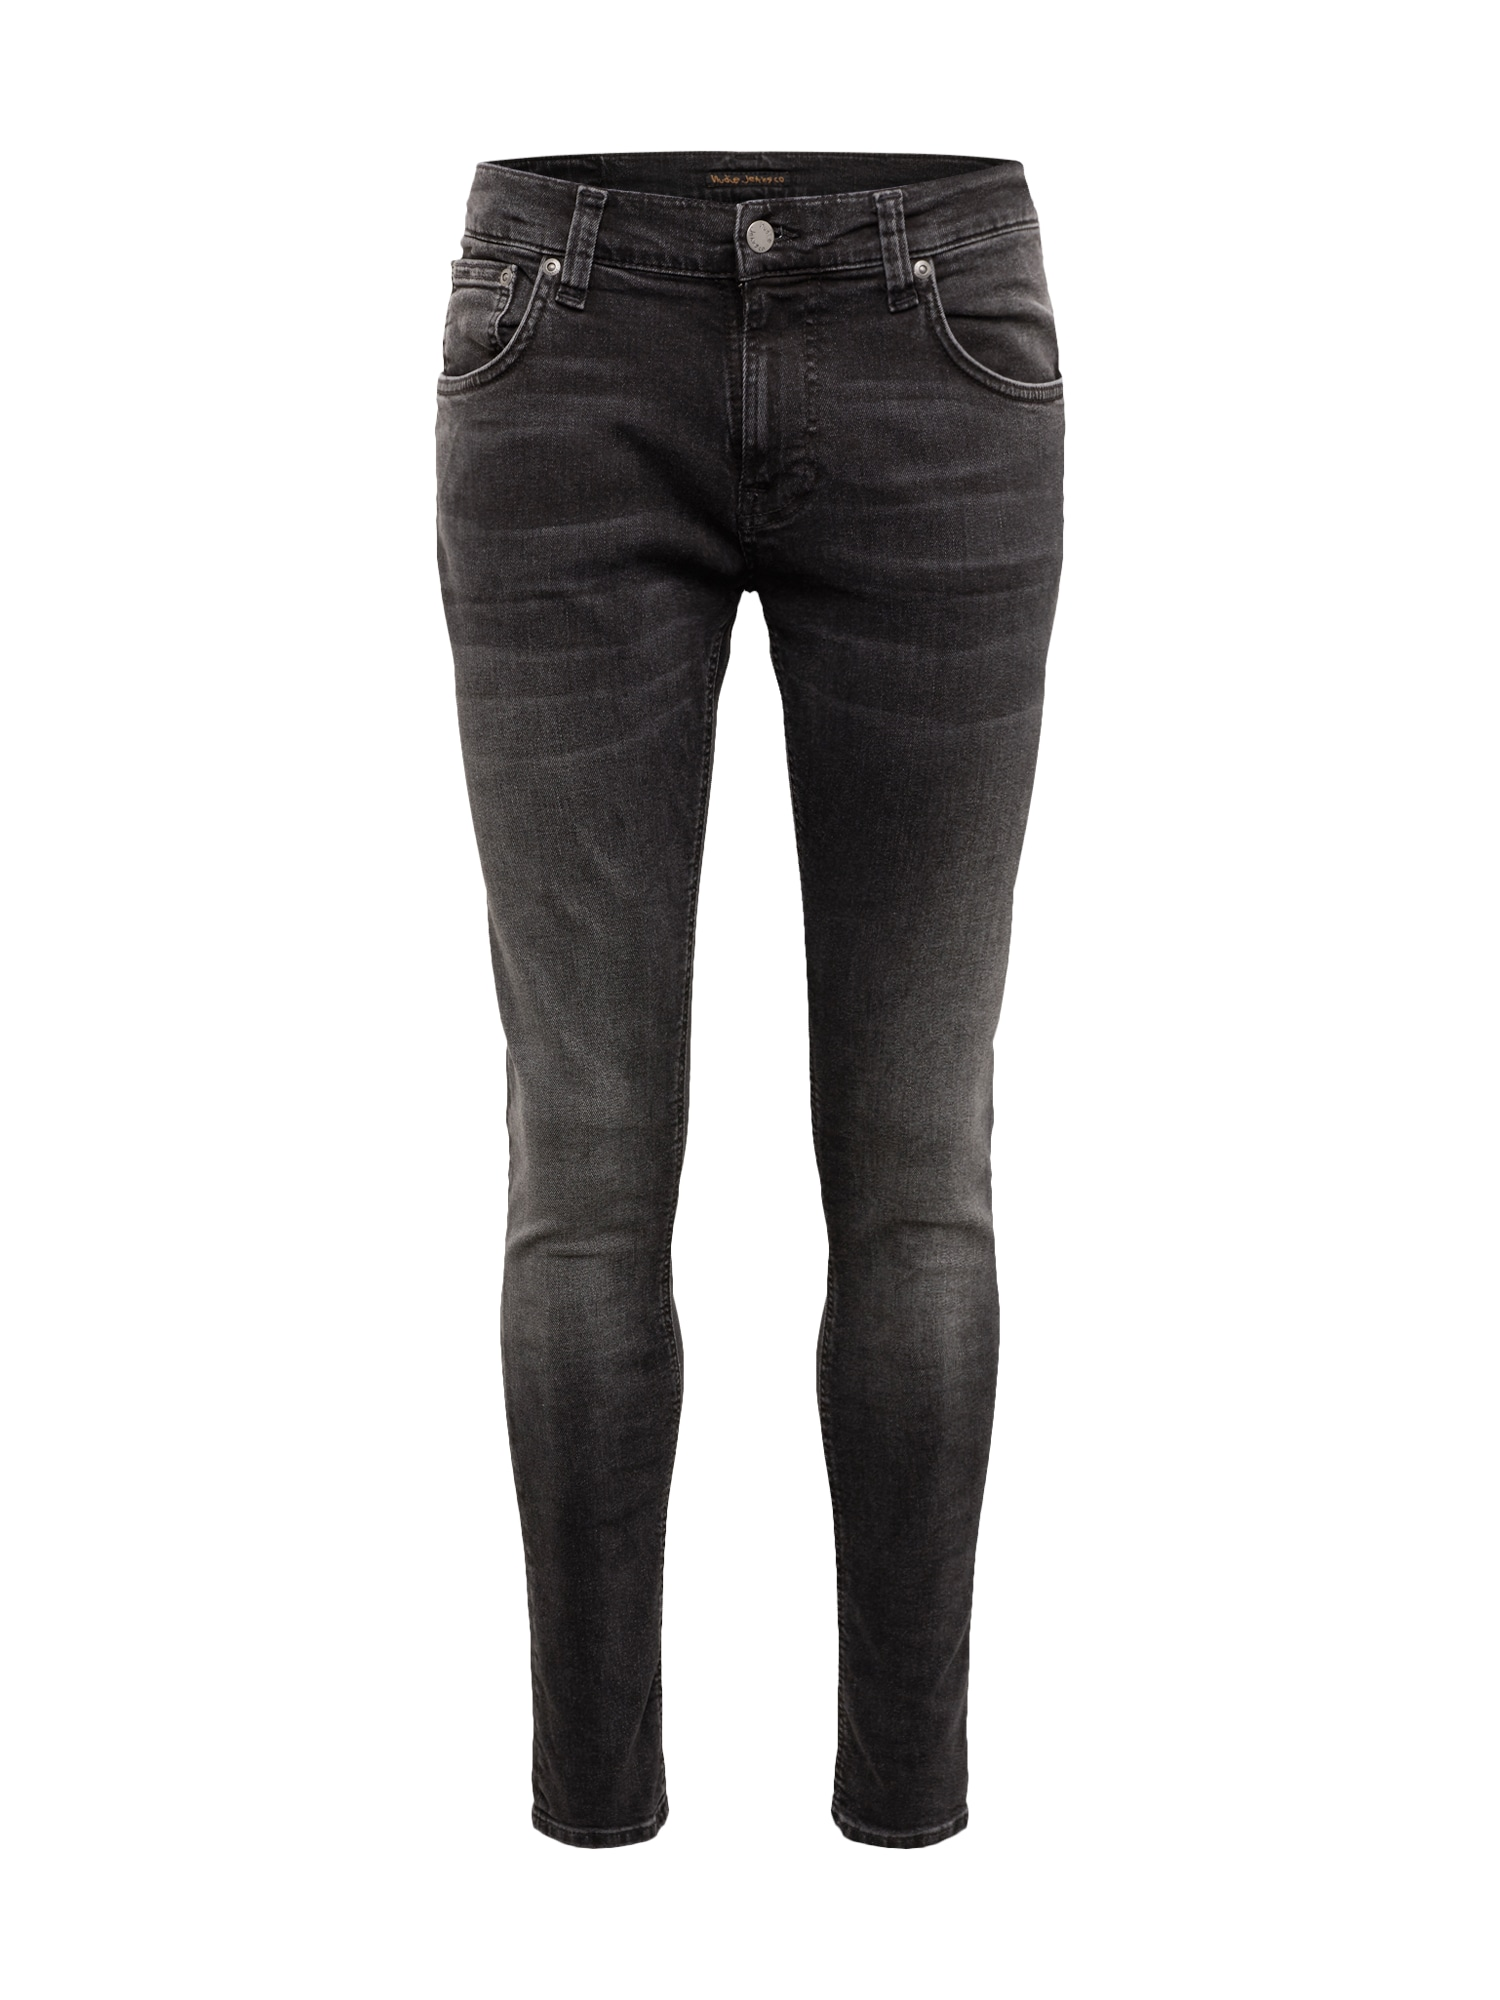 Jeans 'Tight Terry' | Sportbekleidung > Sporthosen > Tights | Nudie Jeans Co